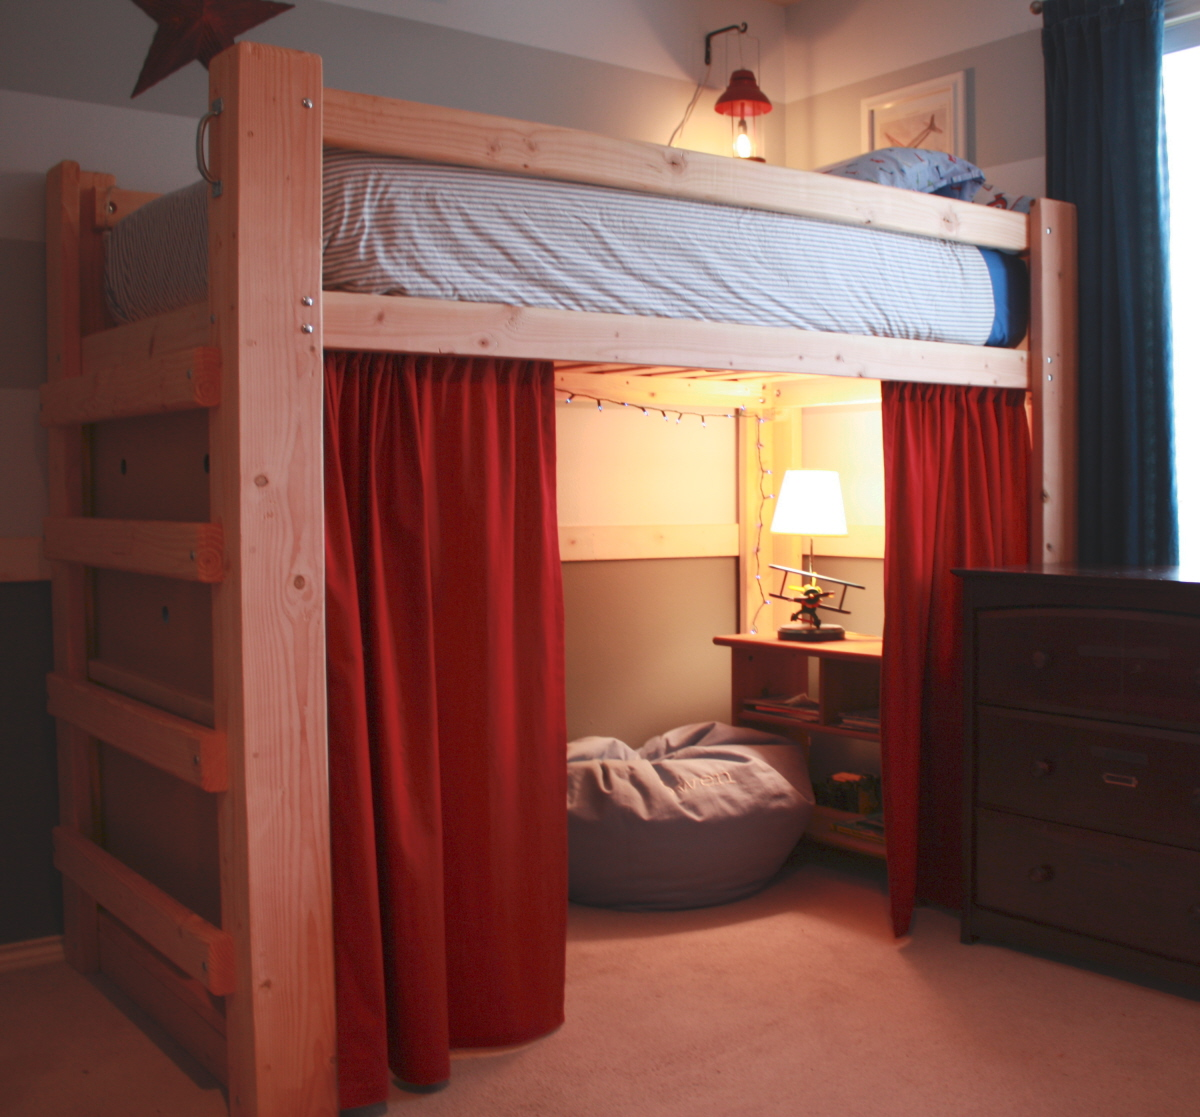 It 39 s the little things that make a house a home the for Fort bedroom ideas